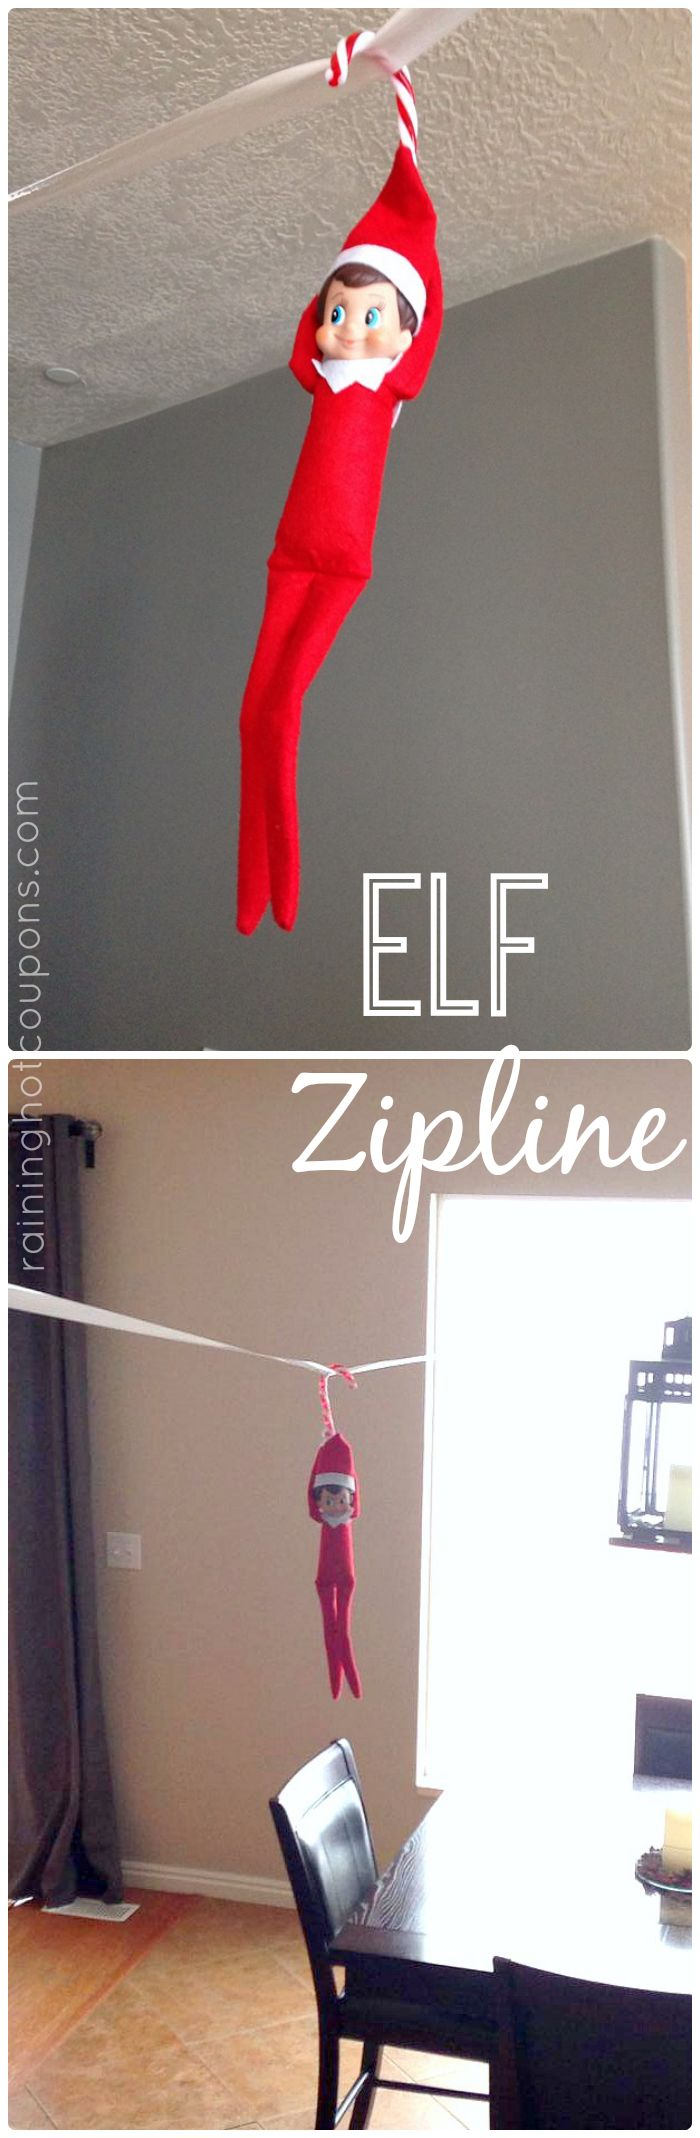 Elf on a Zipline